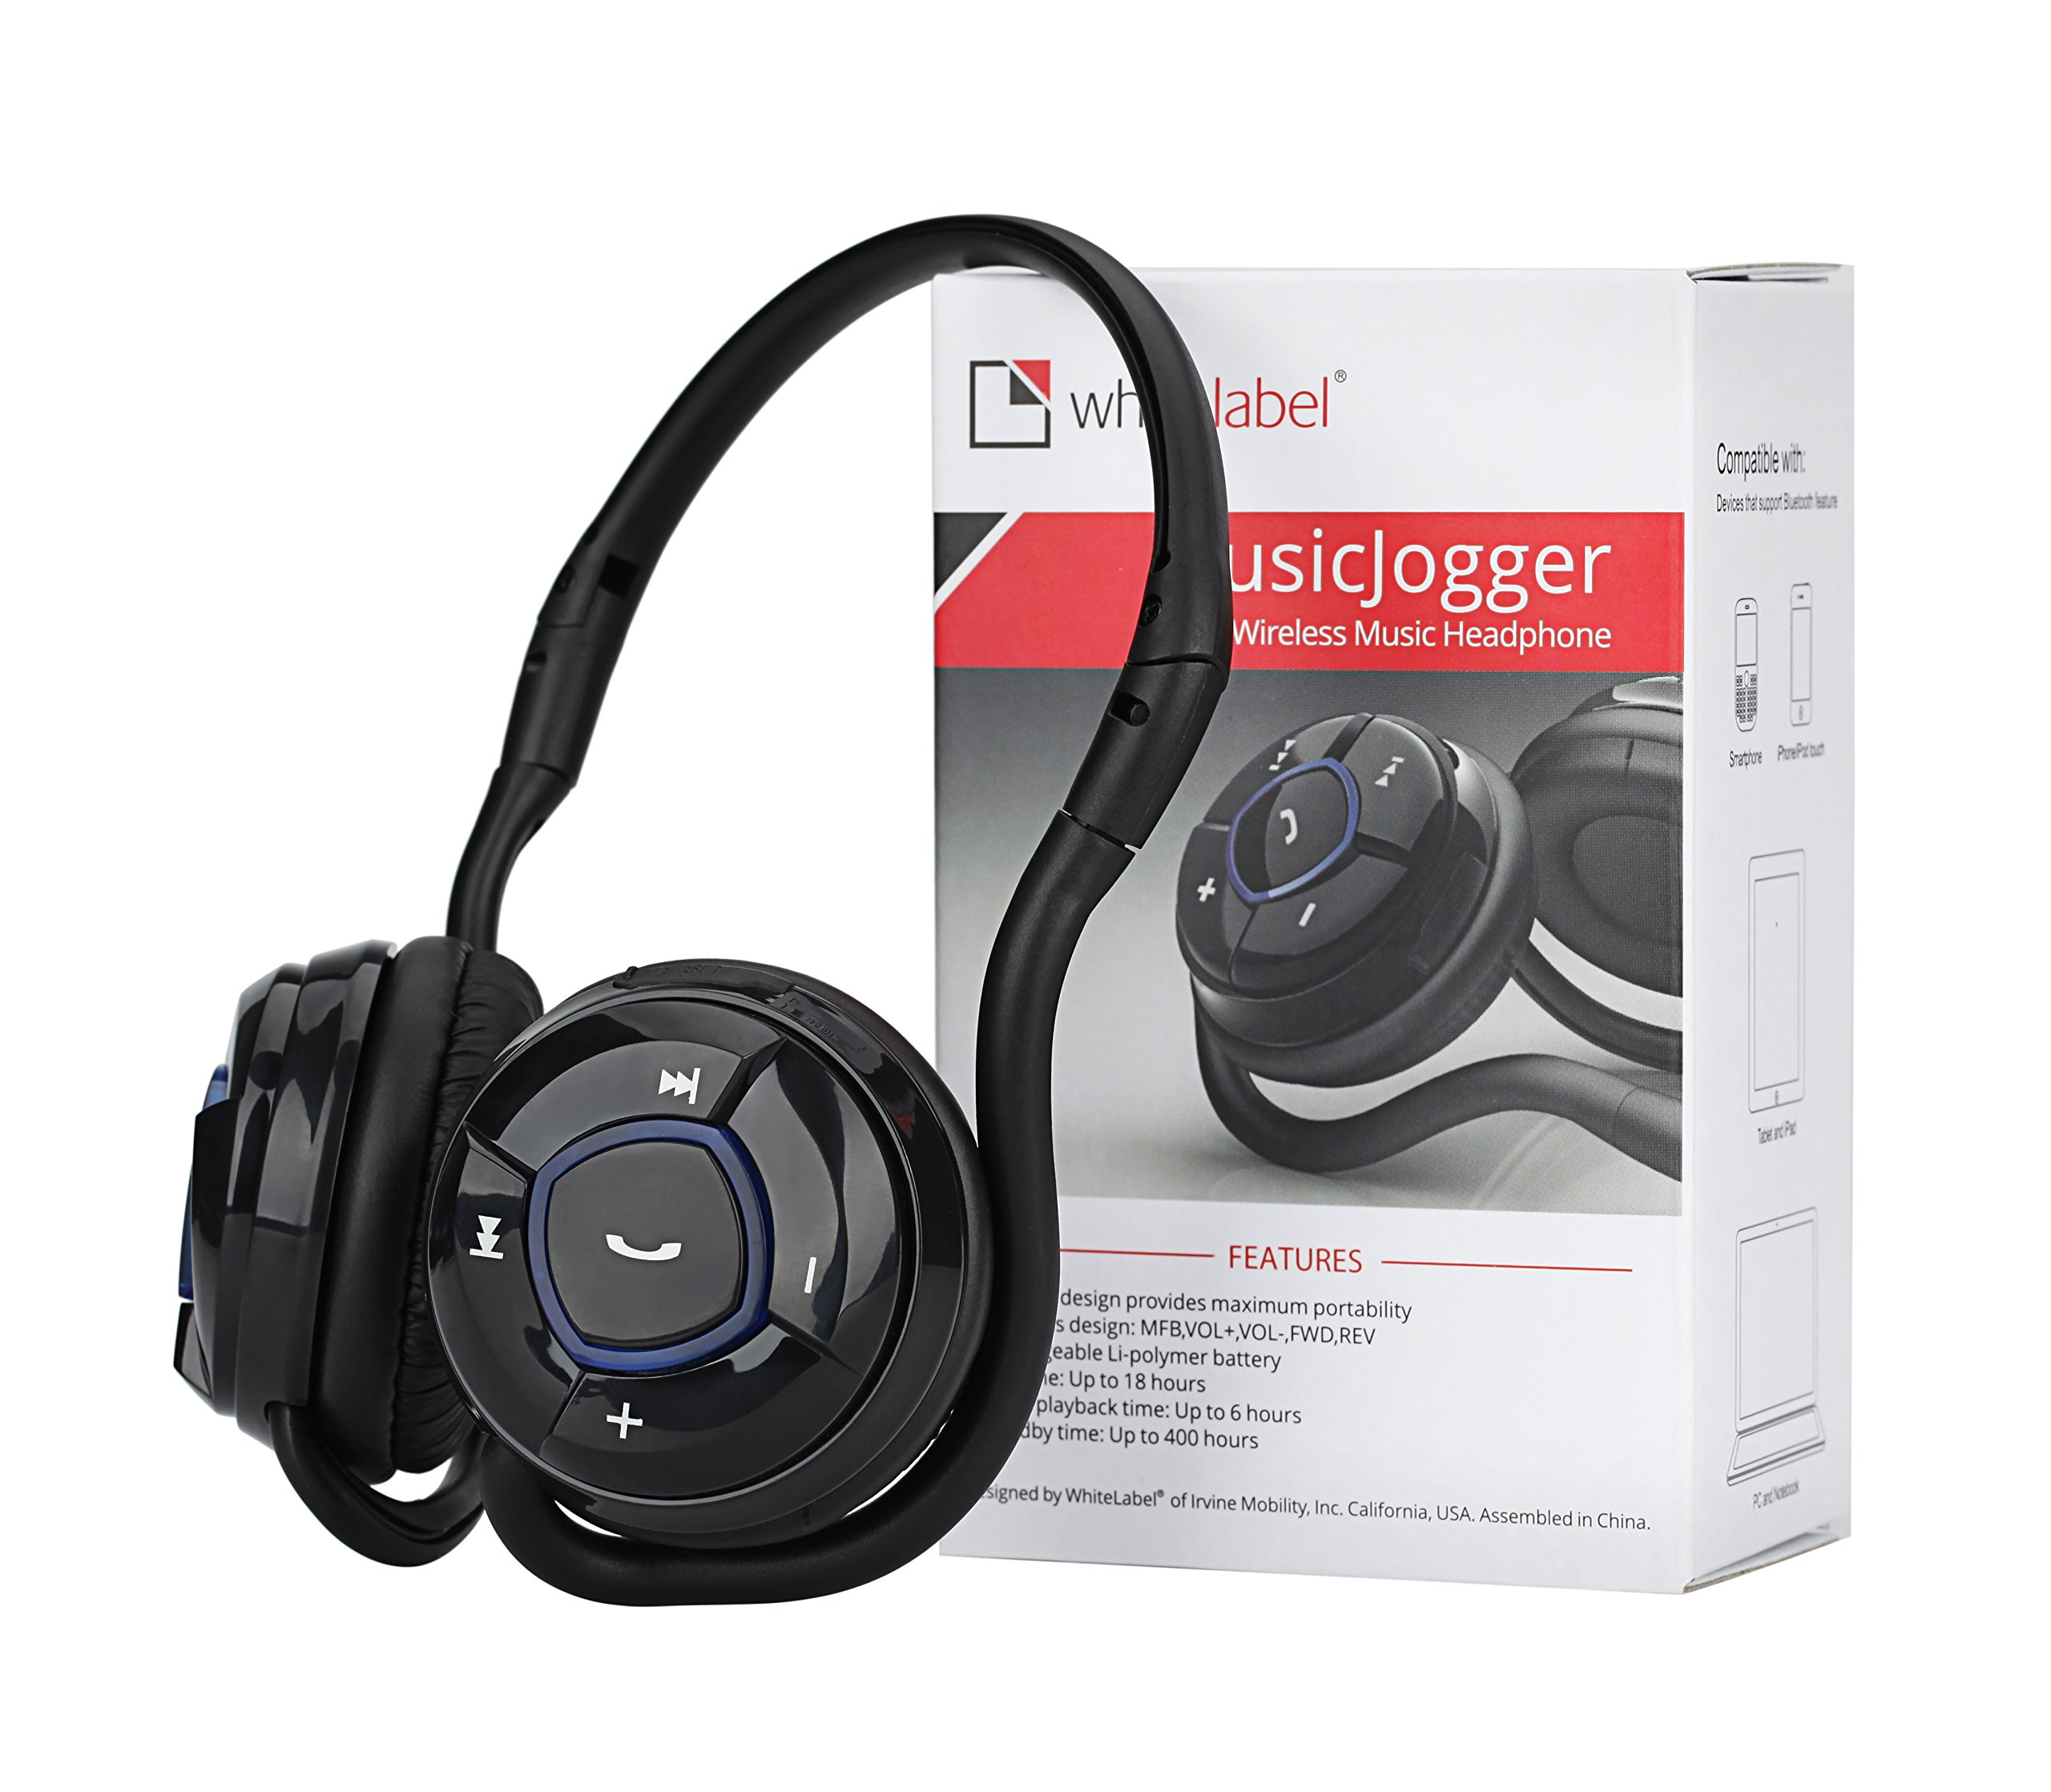 WhiteLabel MusicJogger Wireless Bluetooth Stereo Headphones, Headphone, Sport Headset, Music Streaming, Noise Reduction Handsfree Voice Calling by White Label (Image #7)